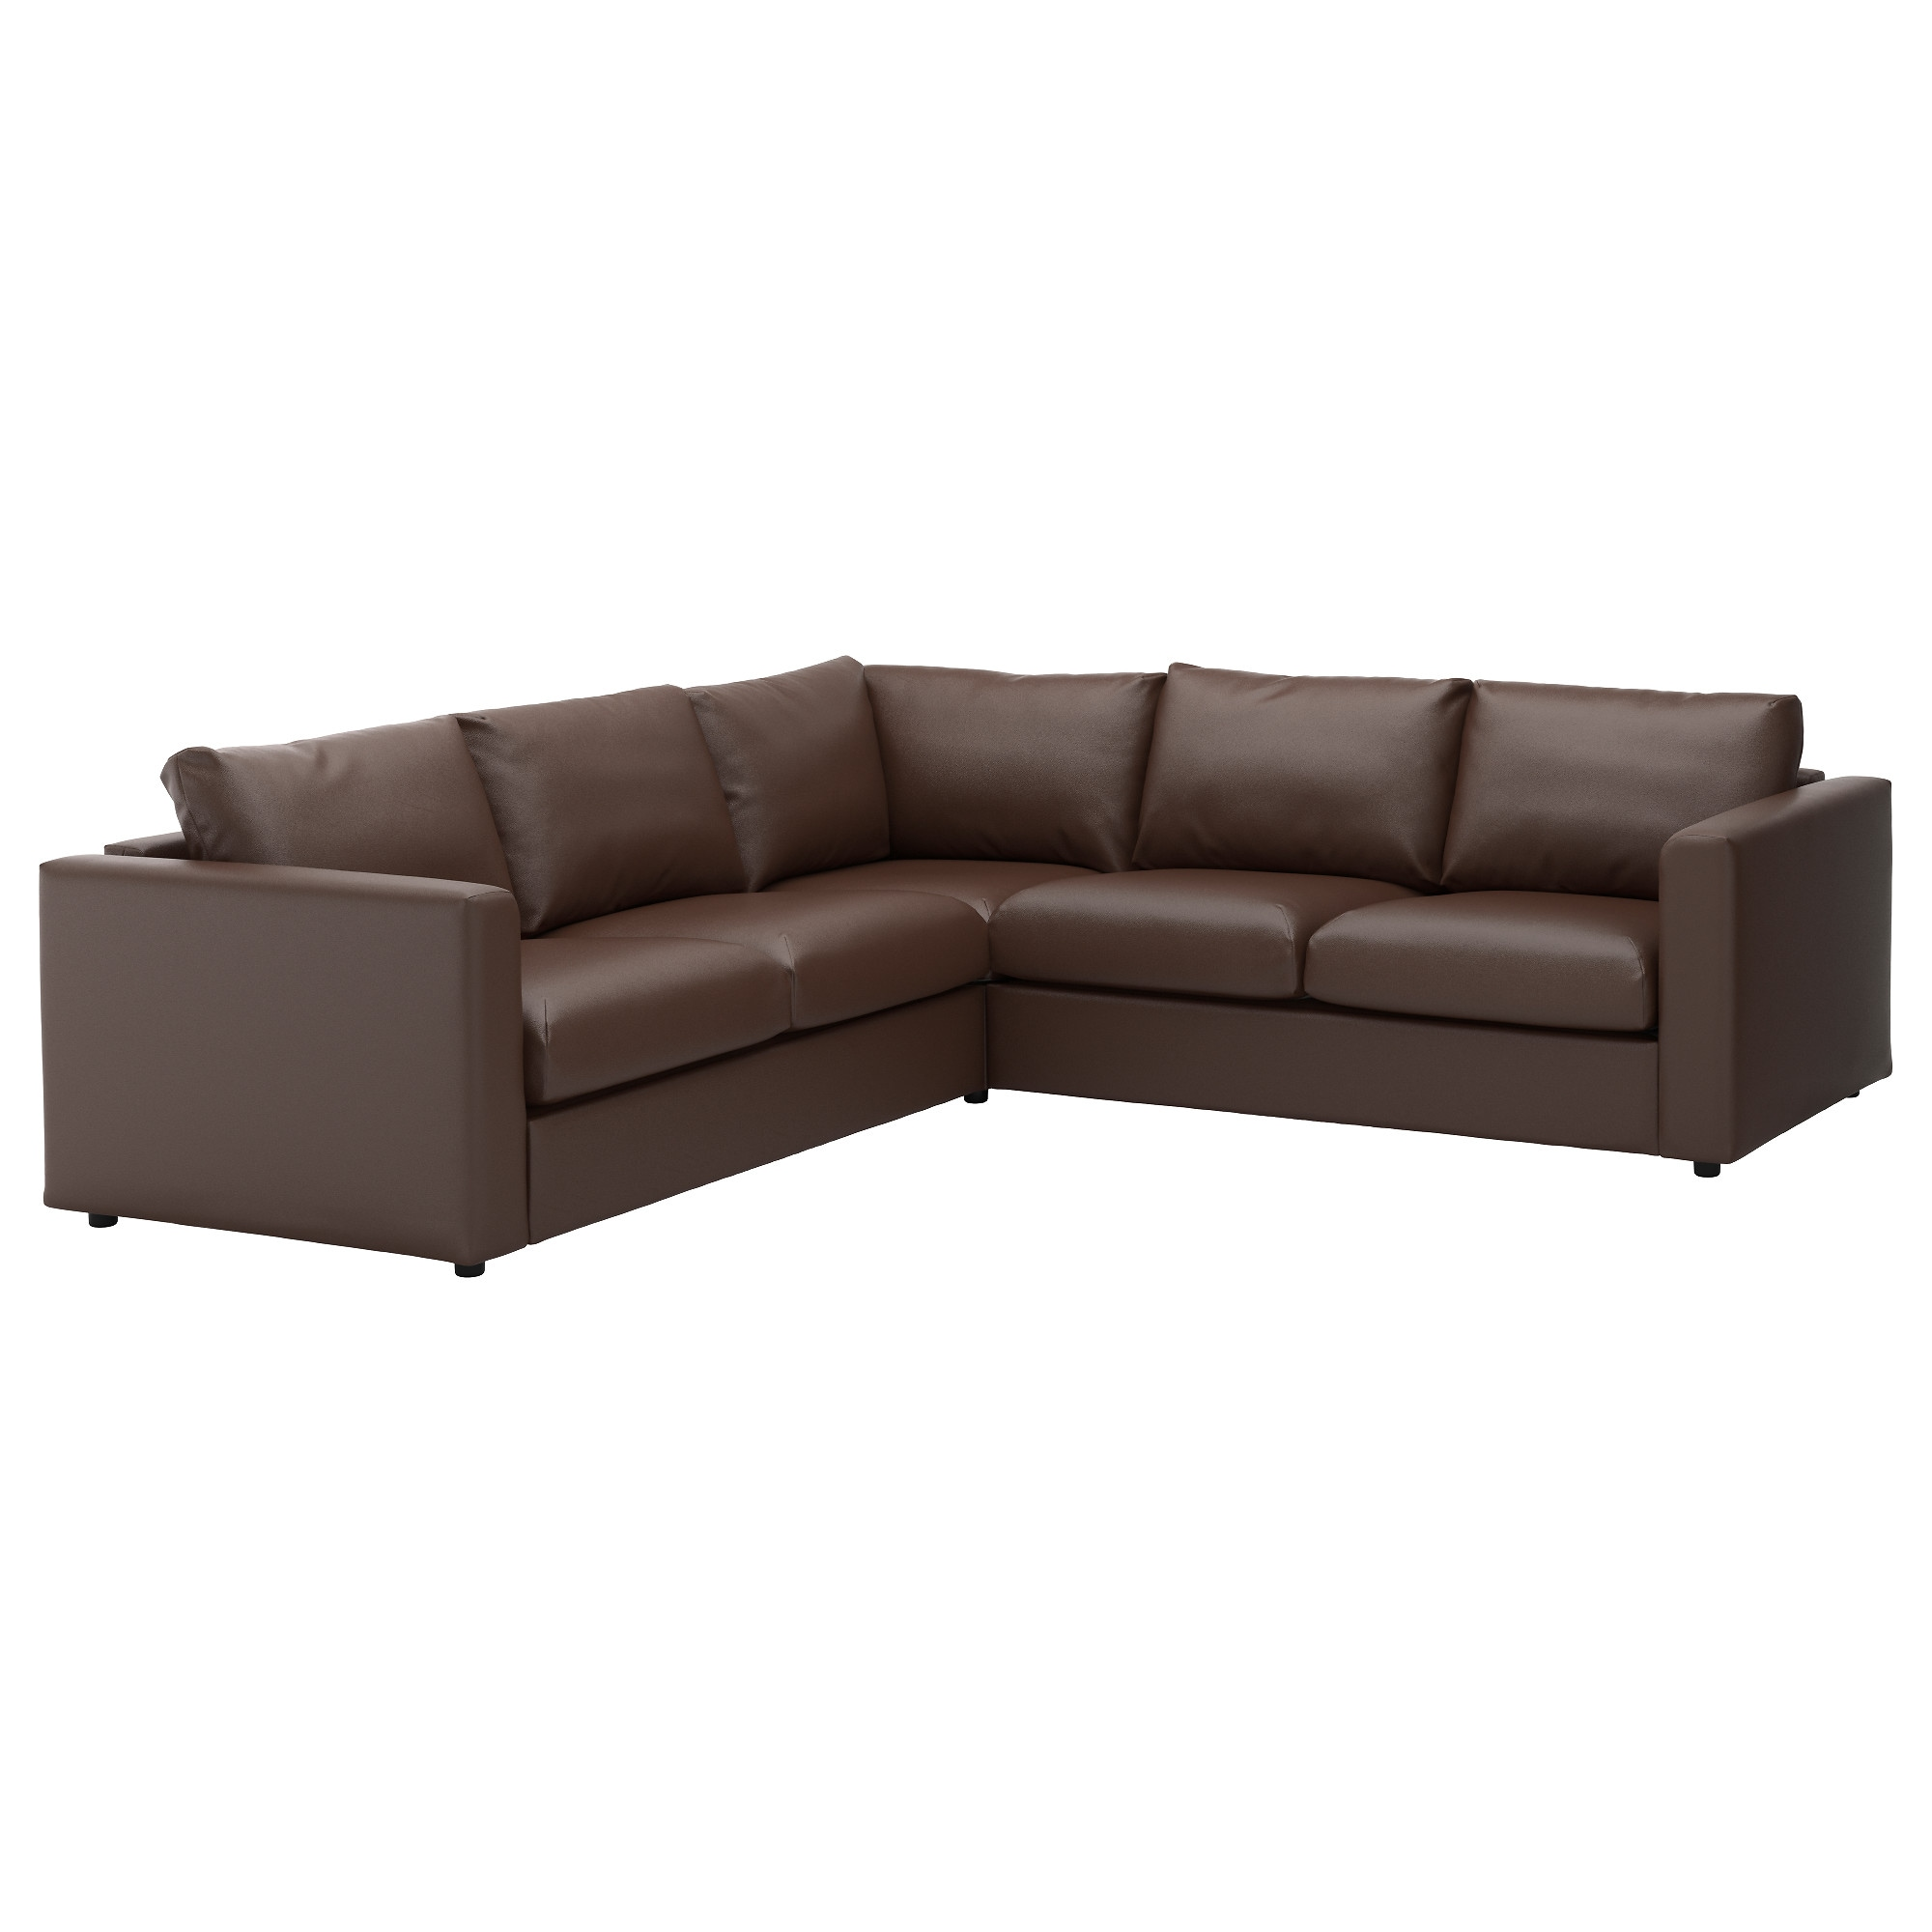 Ikea manstad corner sofa bed rise of the manstad clones for Ikea corner sofa